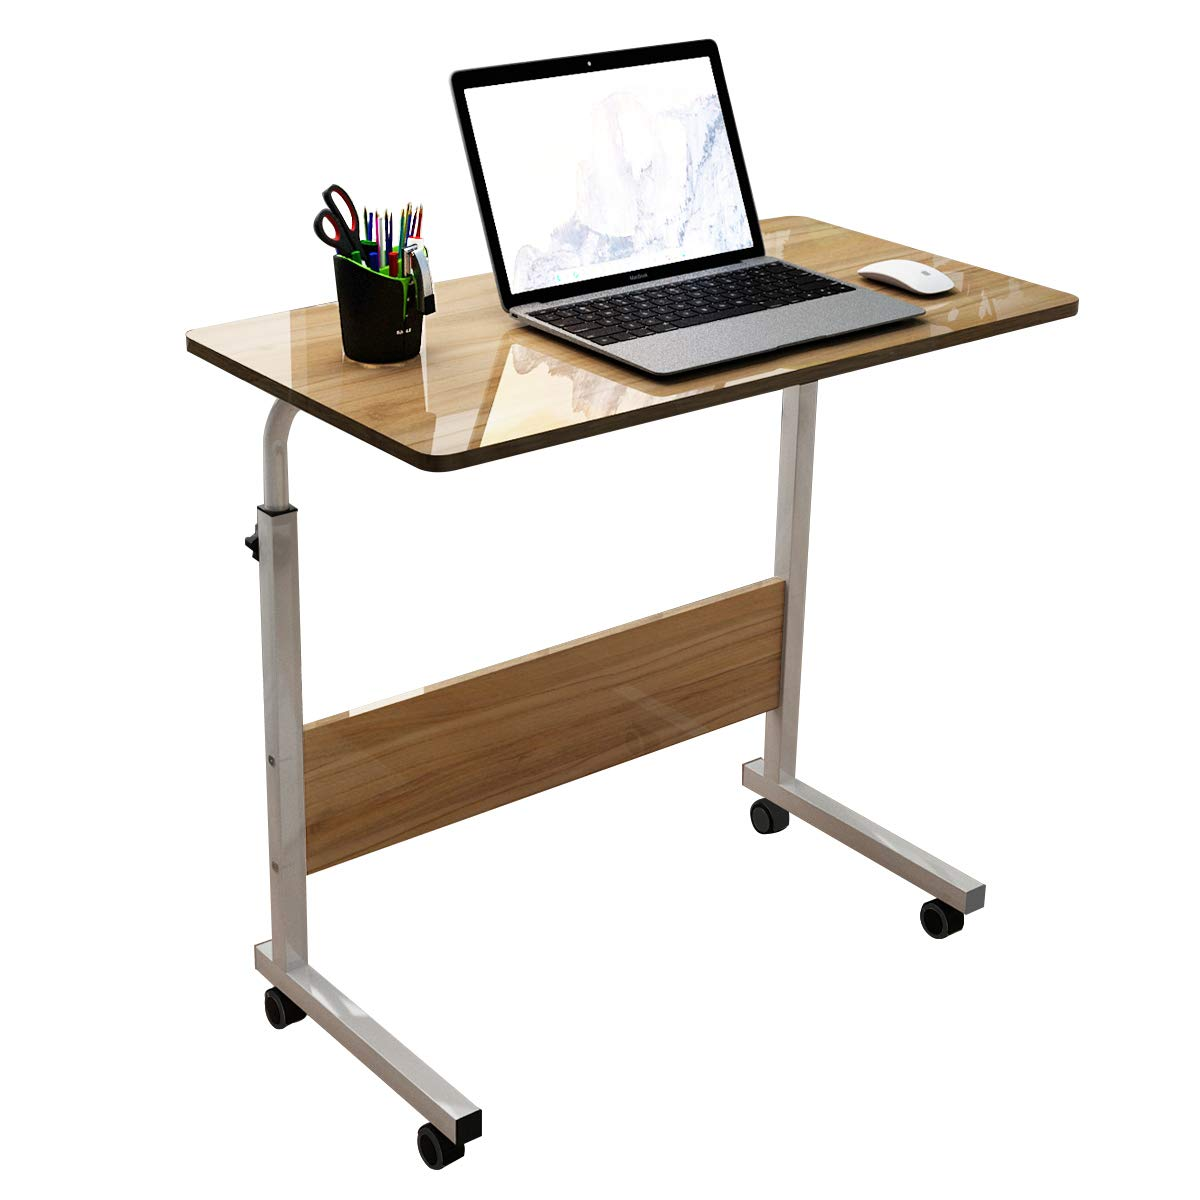 DlandHome 31.4 Inches Large Size Mobile Side Table, Adjustable Movable w/Wheels, Portable Laptop Stand for Bed Sofa, 05#1-80O Oak, 1 Pack